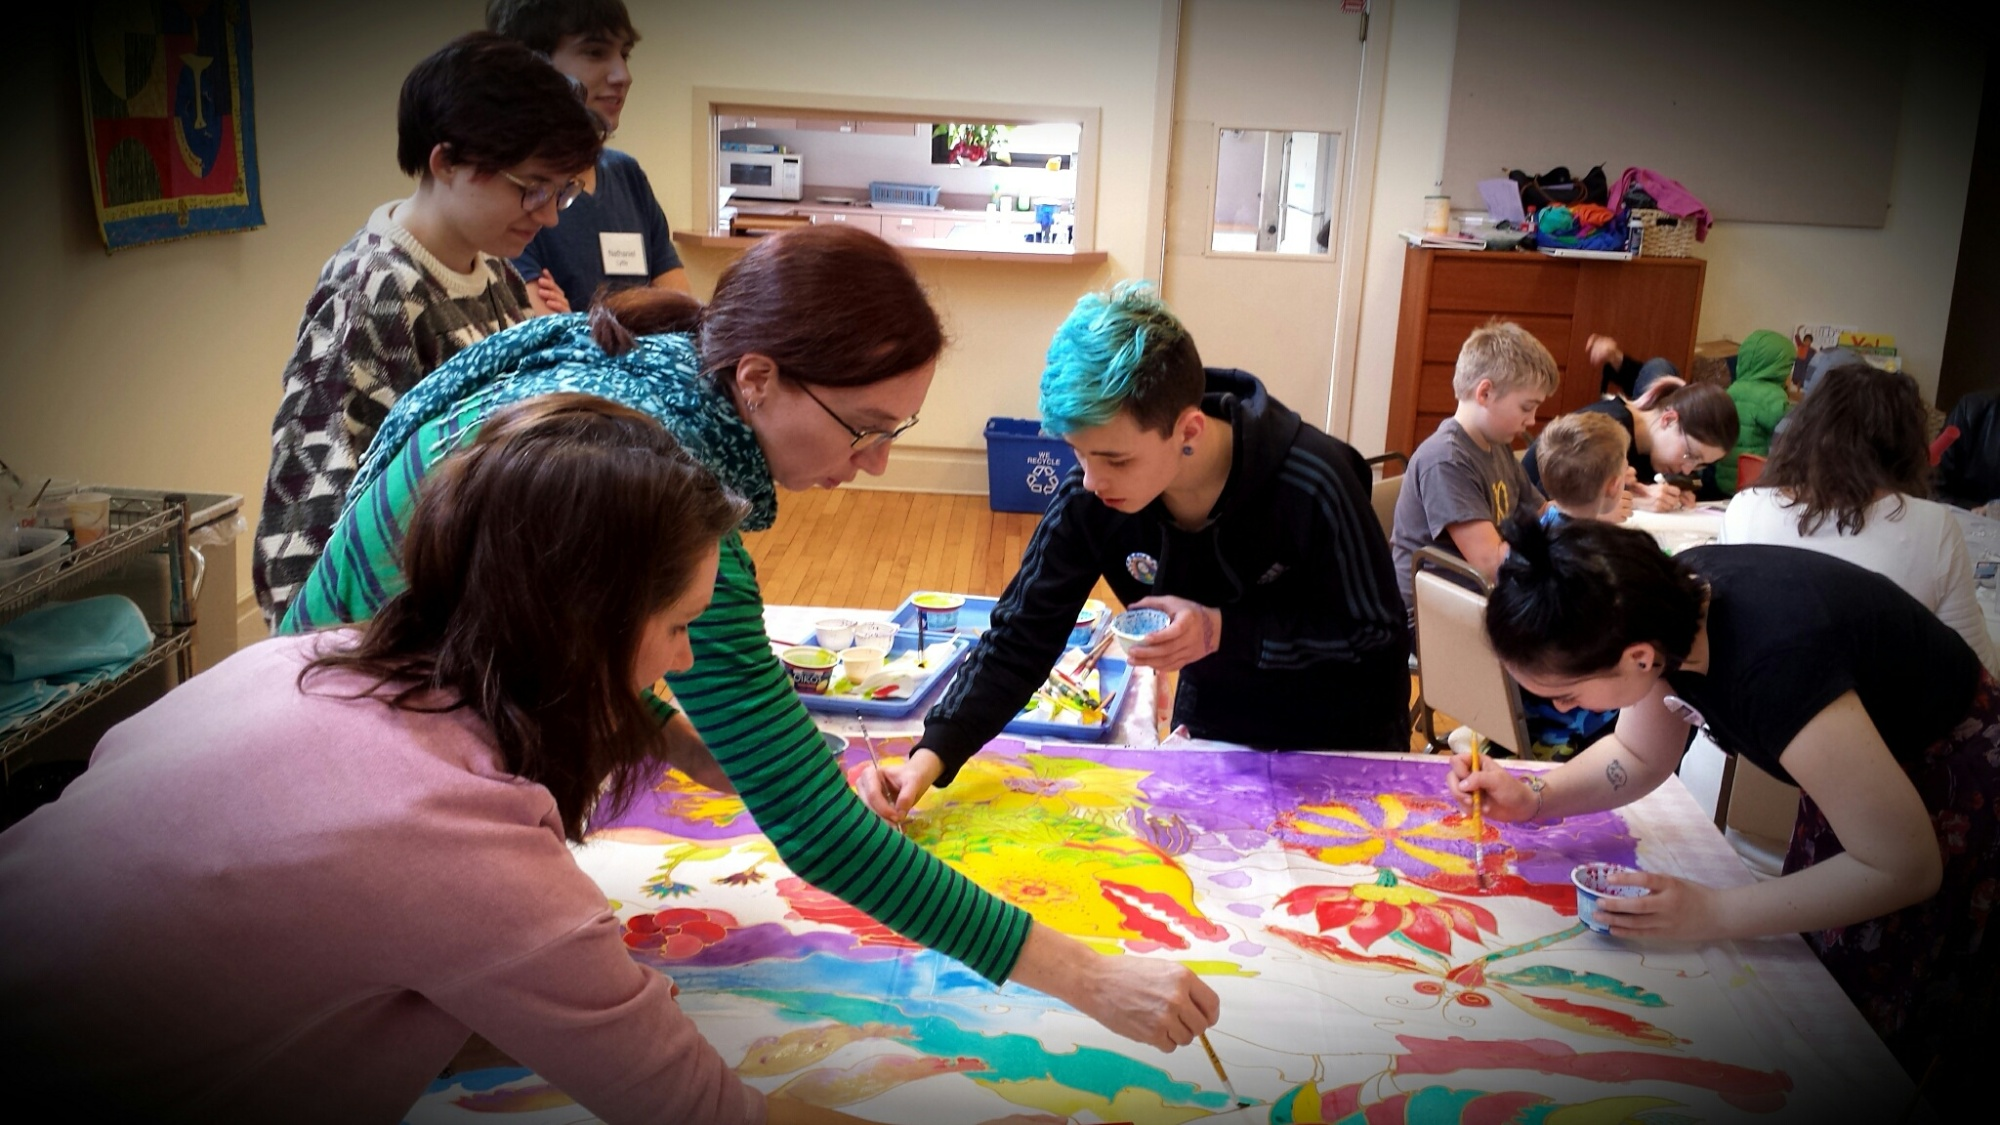 Students and adults paint bright colors on fabric during Sofiya's workshop